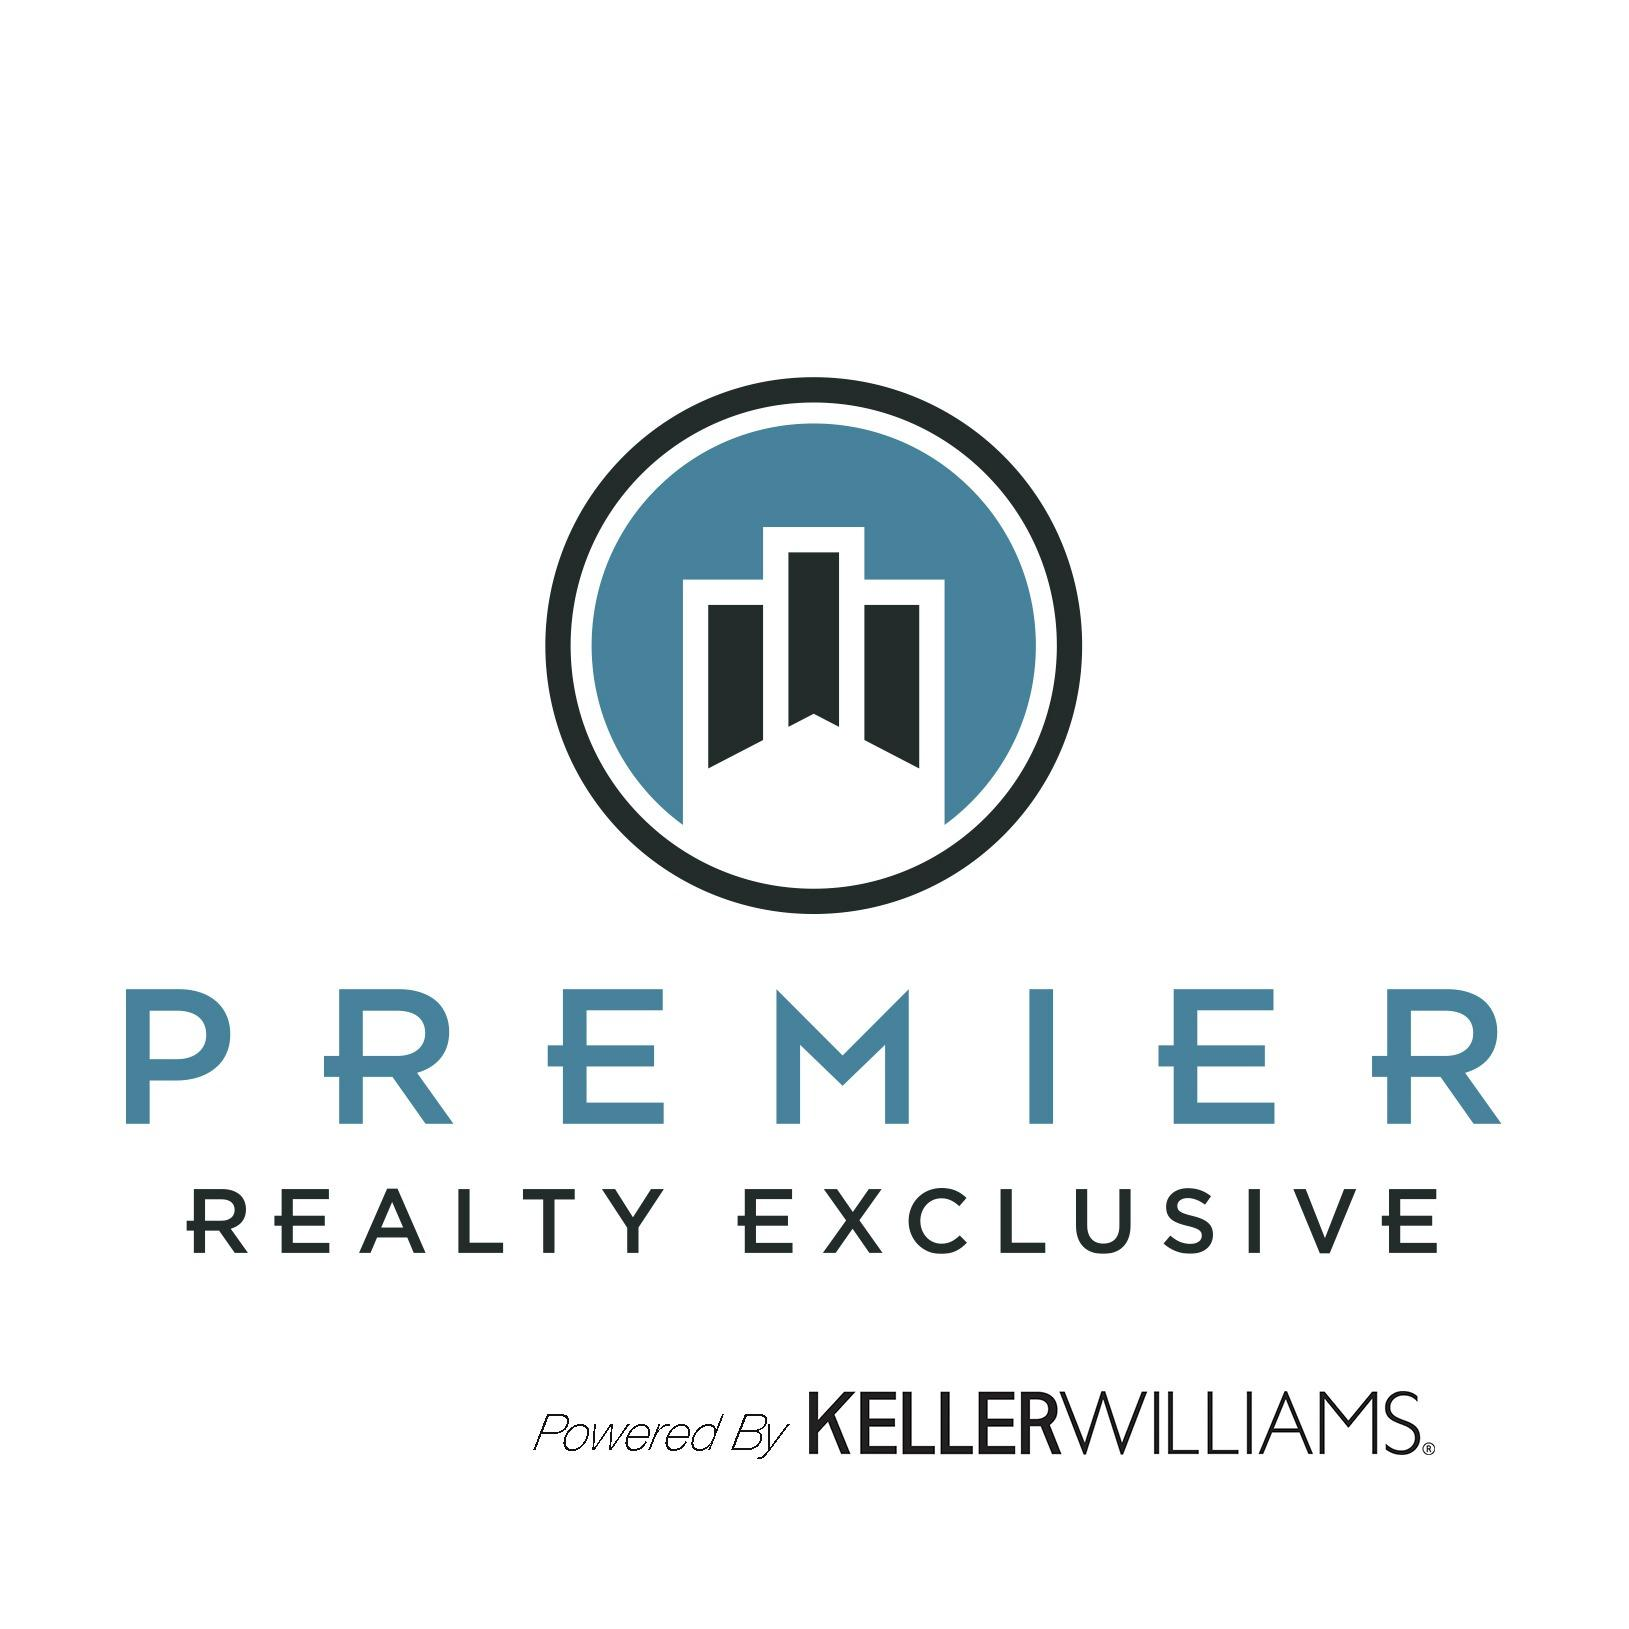 Premier Realty Exclusive powered by Keller Williams